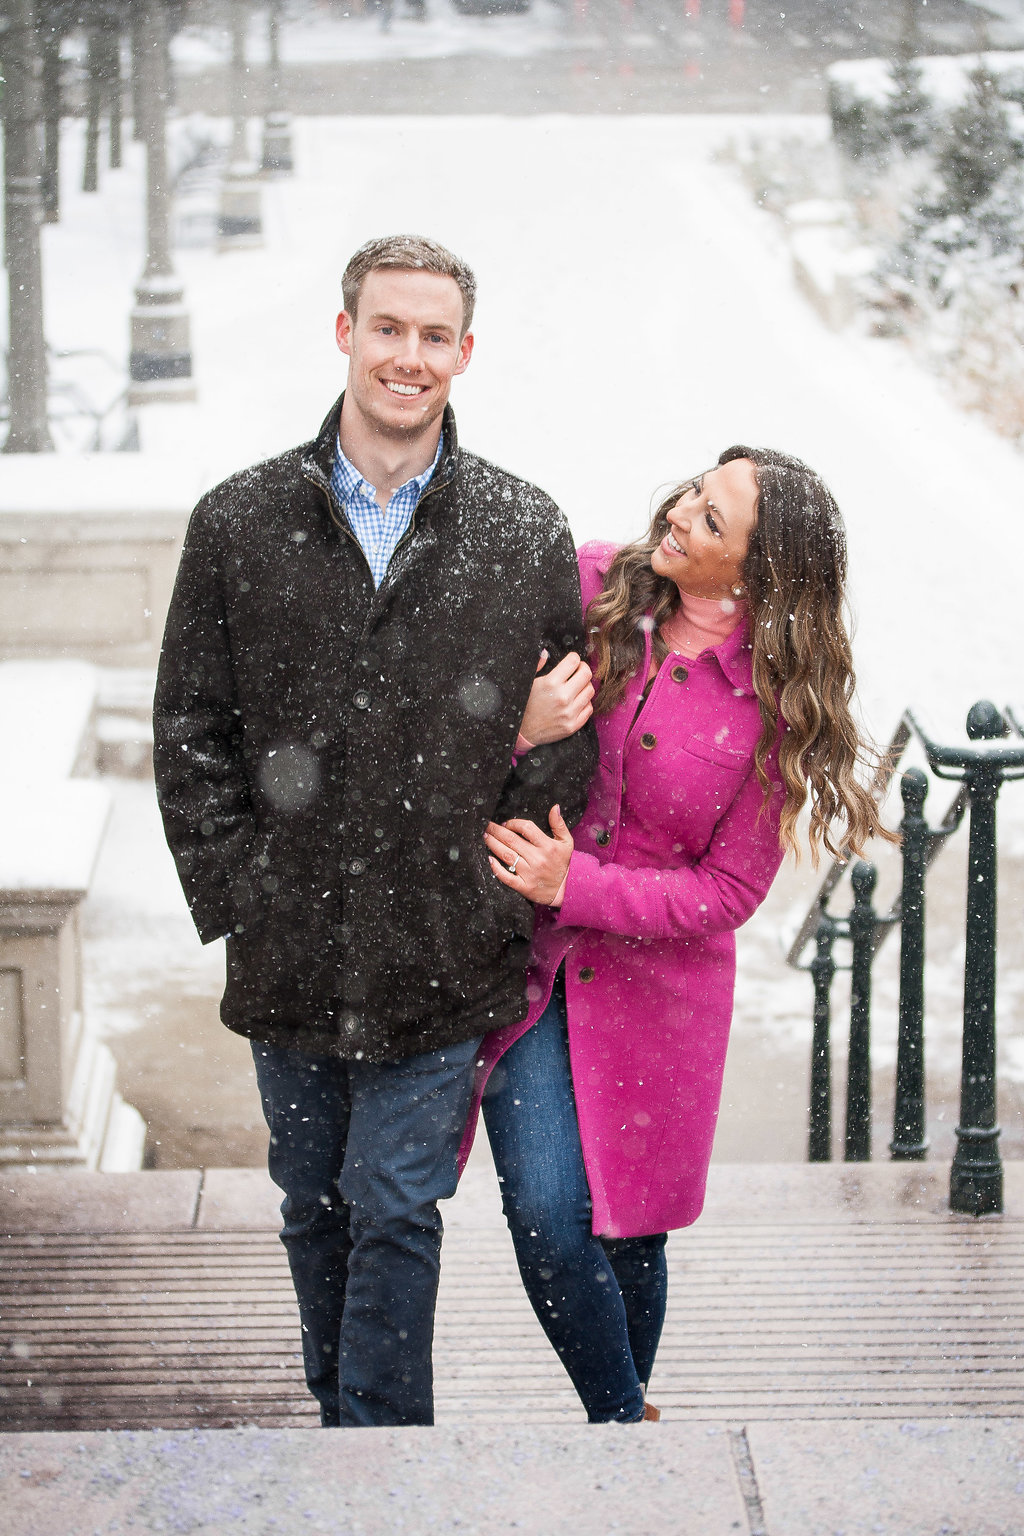 Millennium Park Chicago Illinois Winter Engagement Photographer Taylor Ingles 29